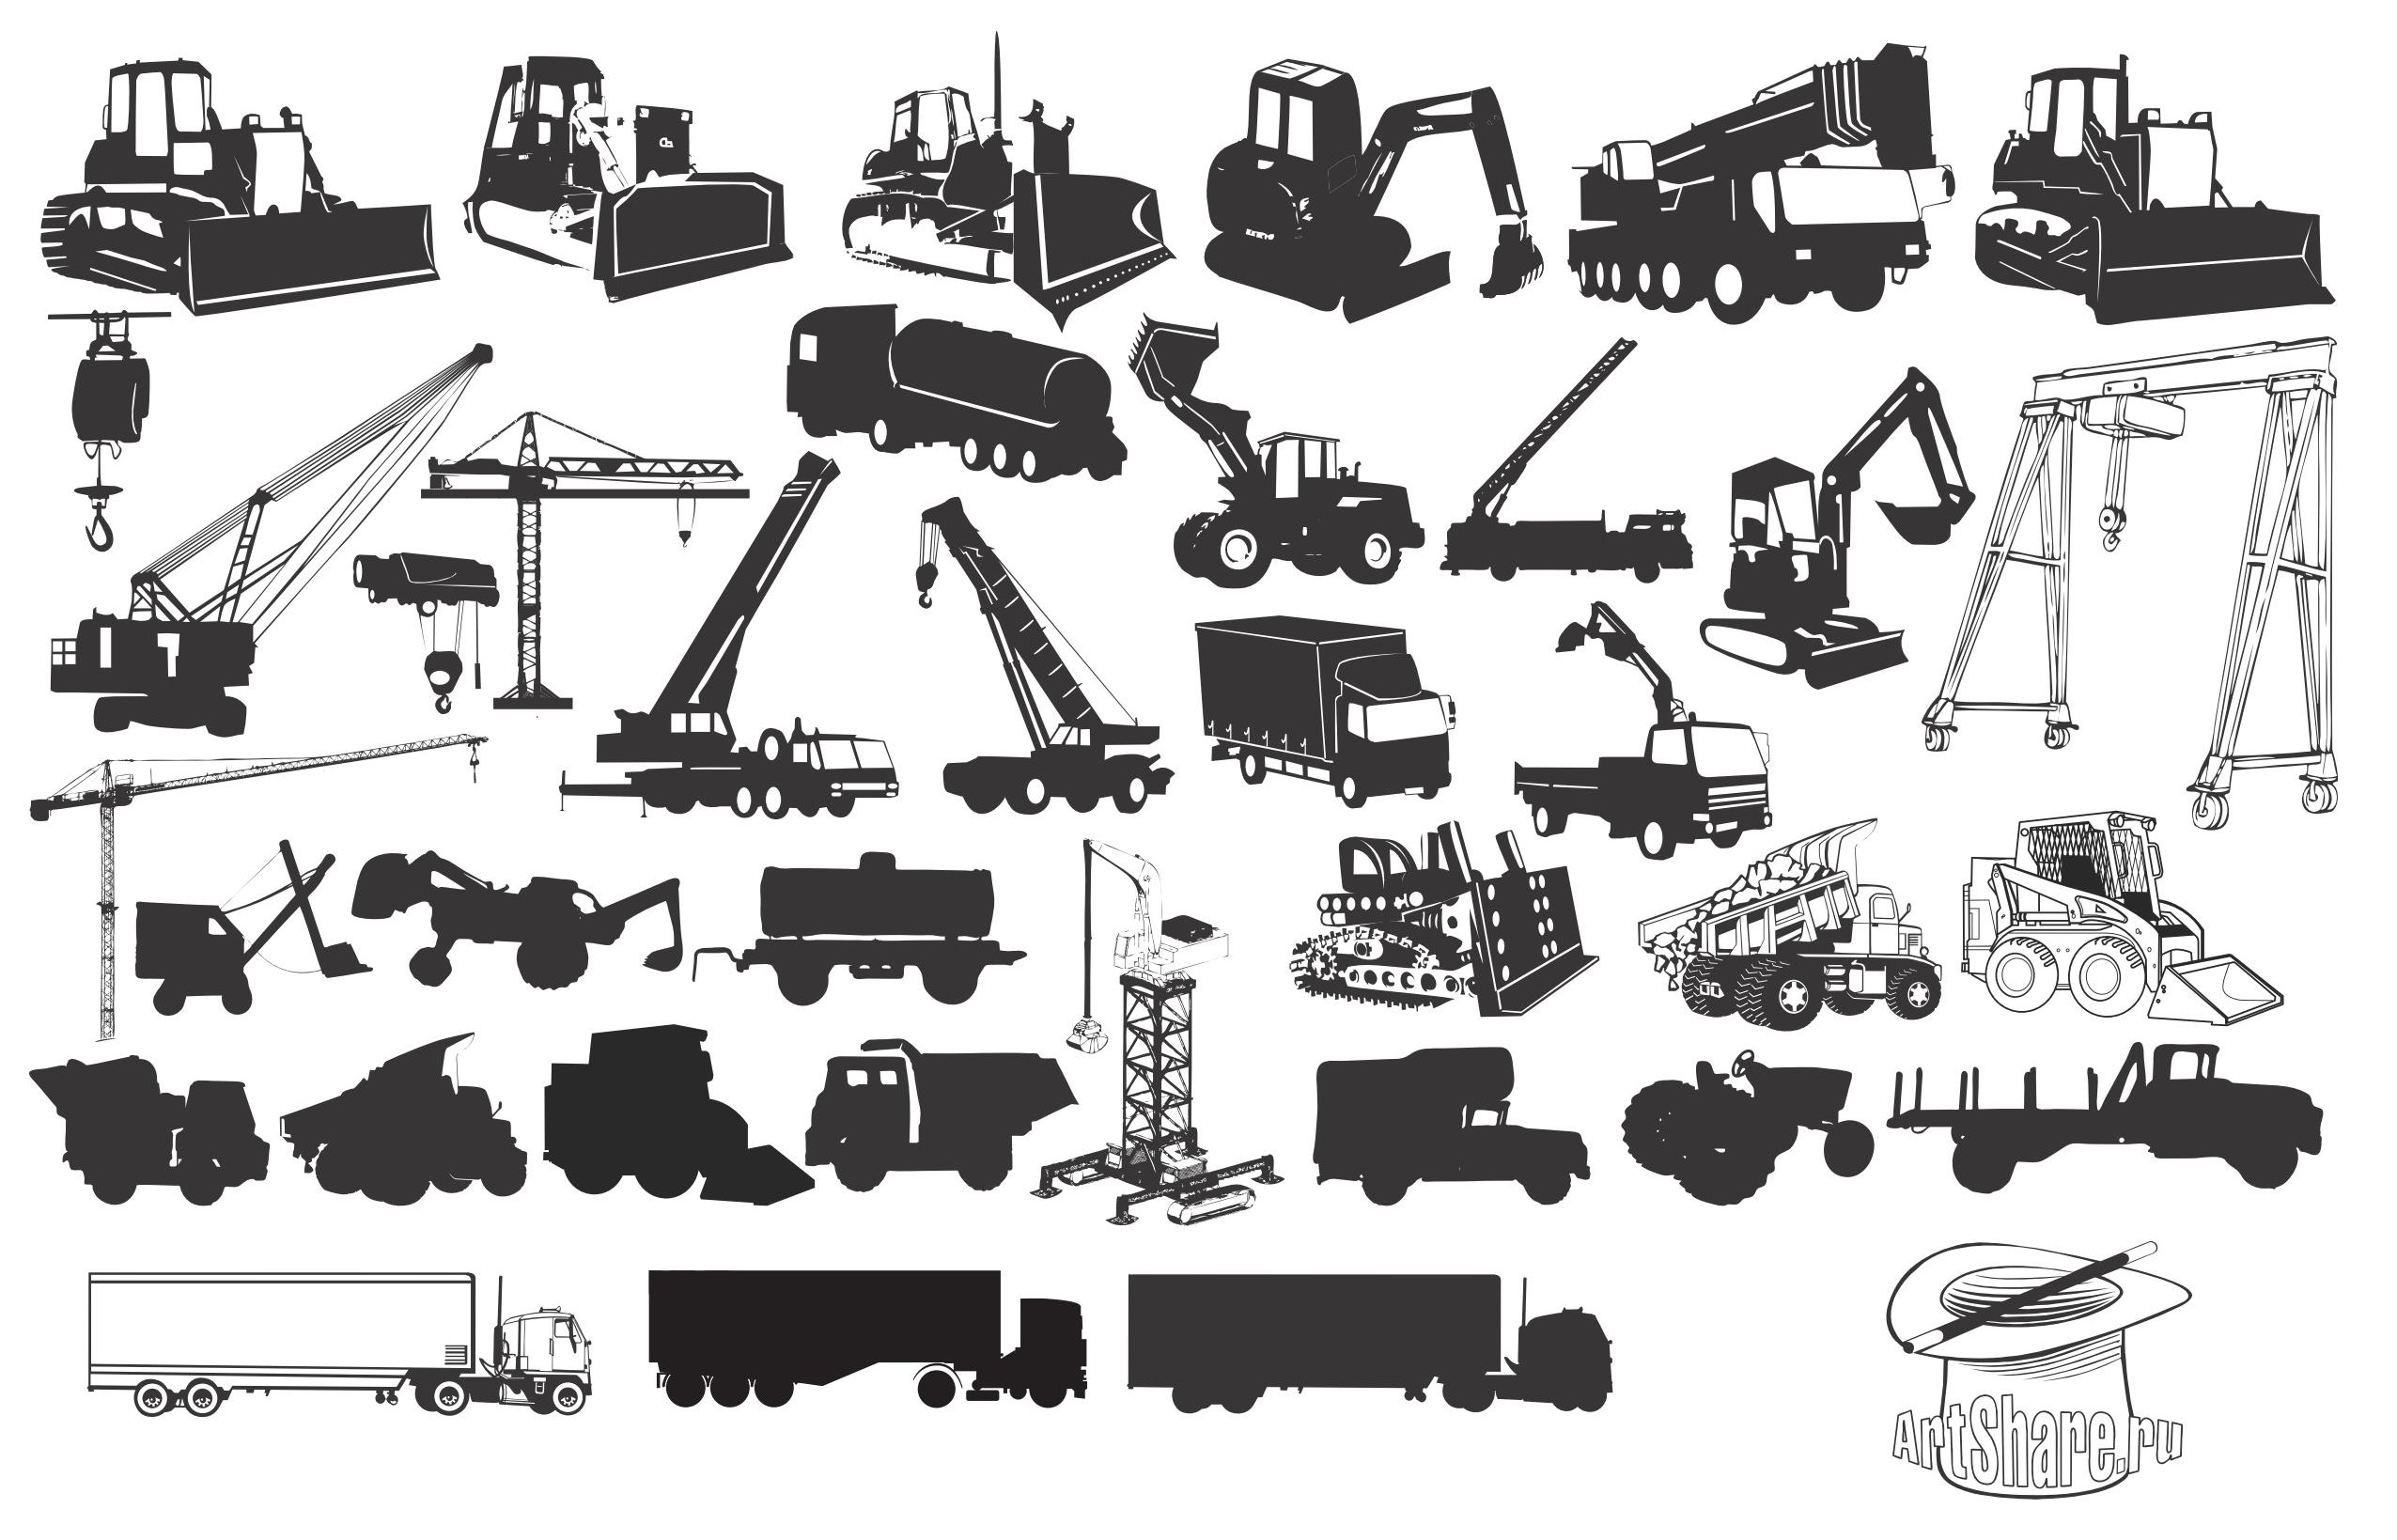 1000+ images about Construction Machinery on Pinterest.